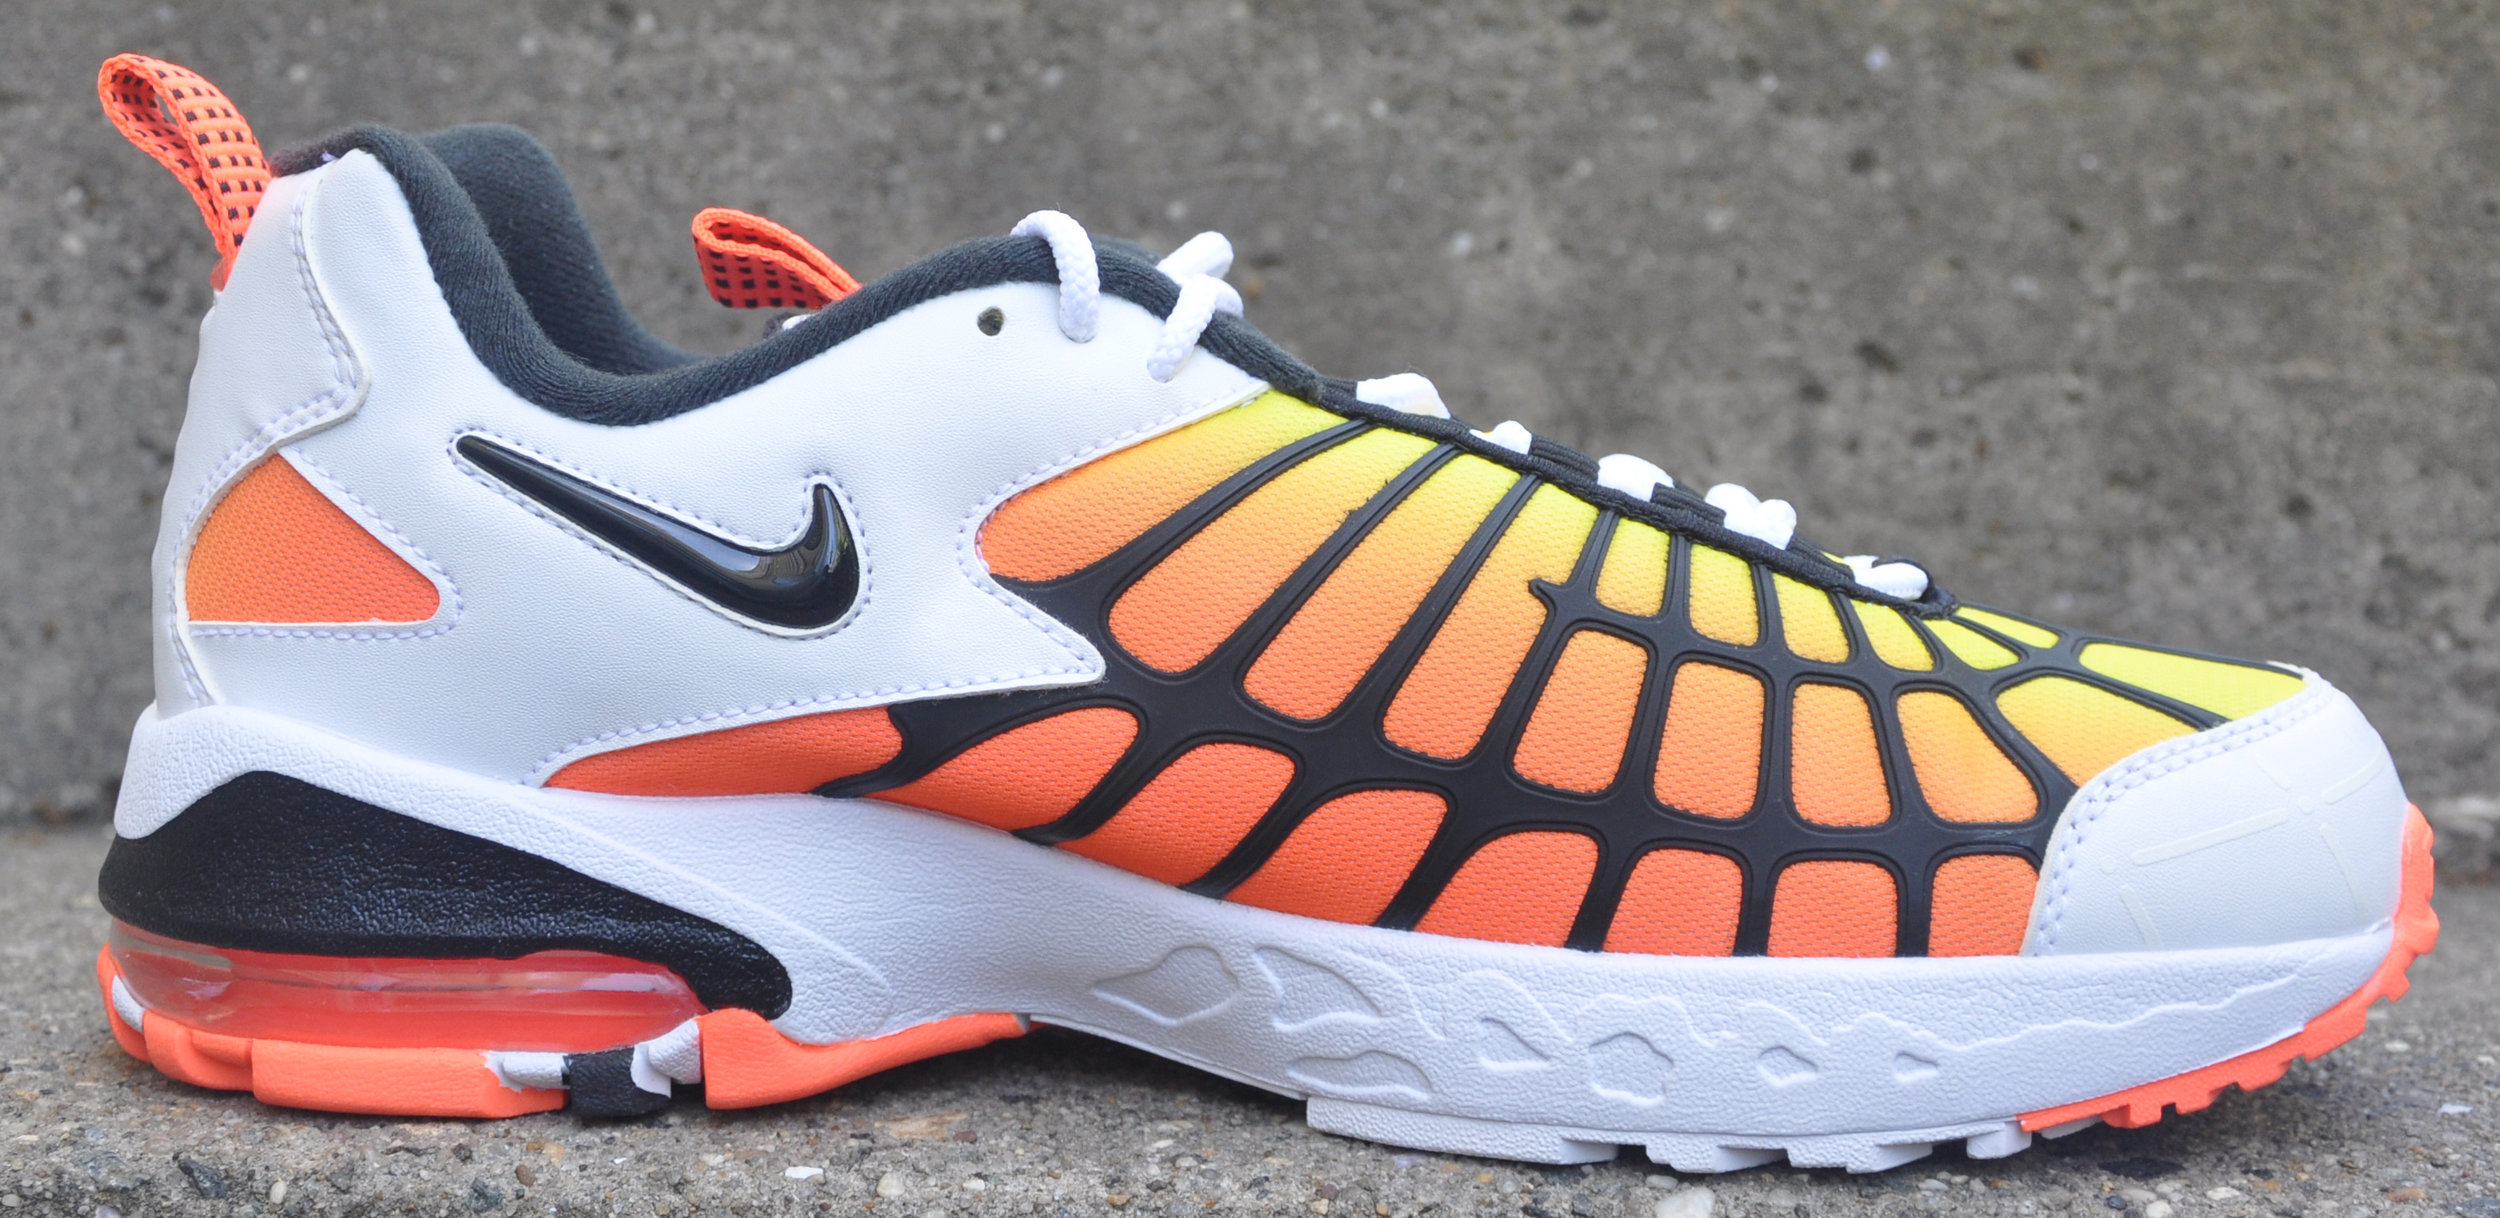 reputable site ef799 ff1a5 Nike Air Max 120 Hyper Orange (Size 10.5) DS — Roots